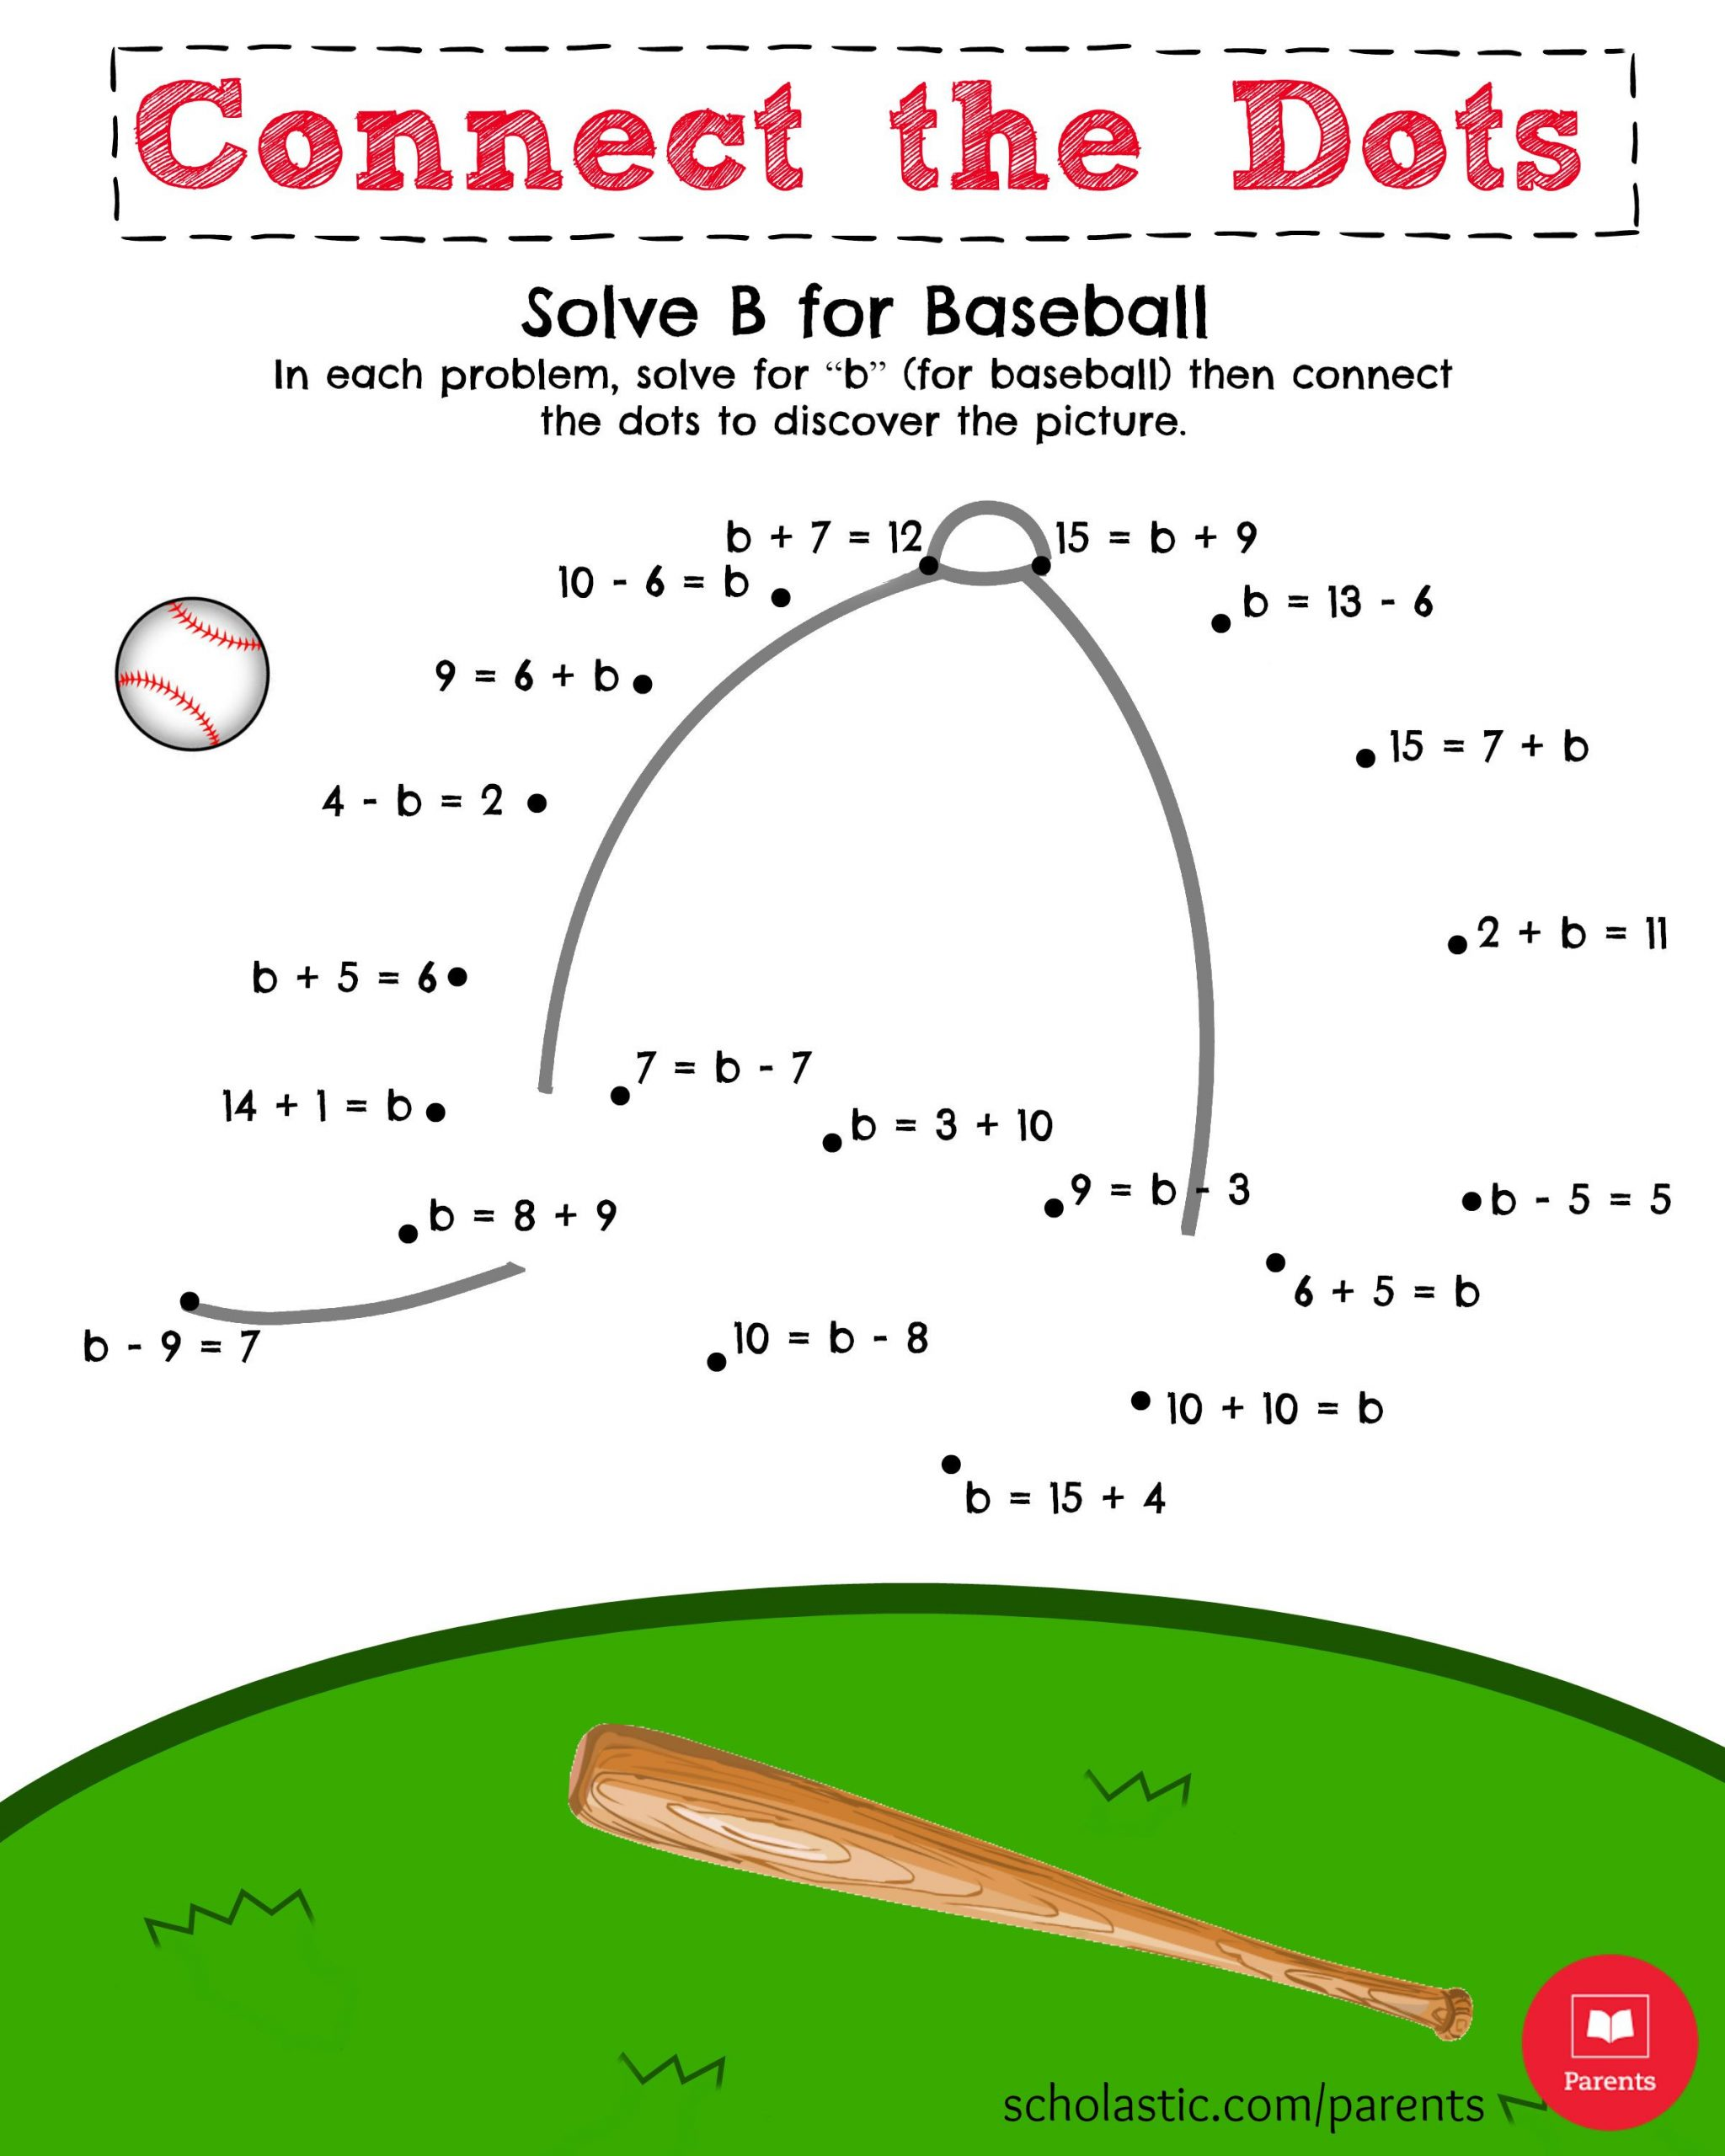 Baseball Math Worksheets Help Your Child solve for B and then Connect the Dots In